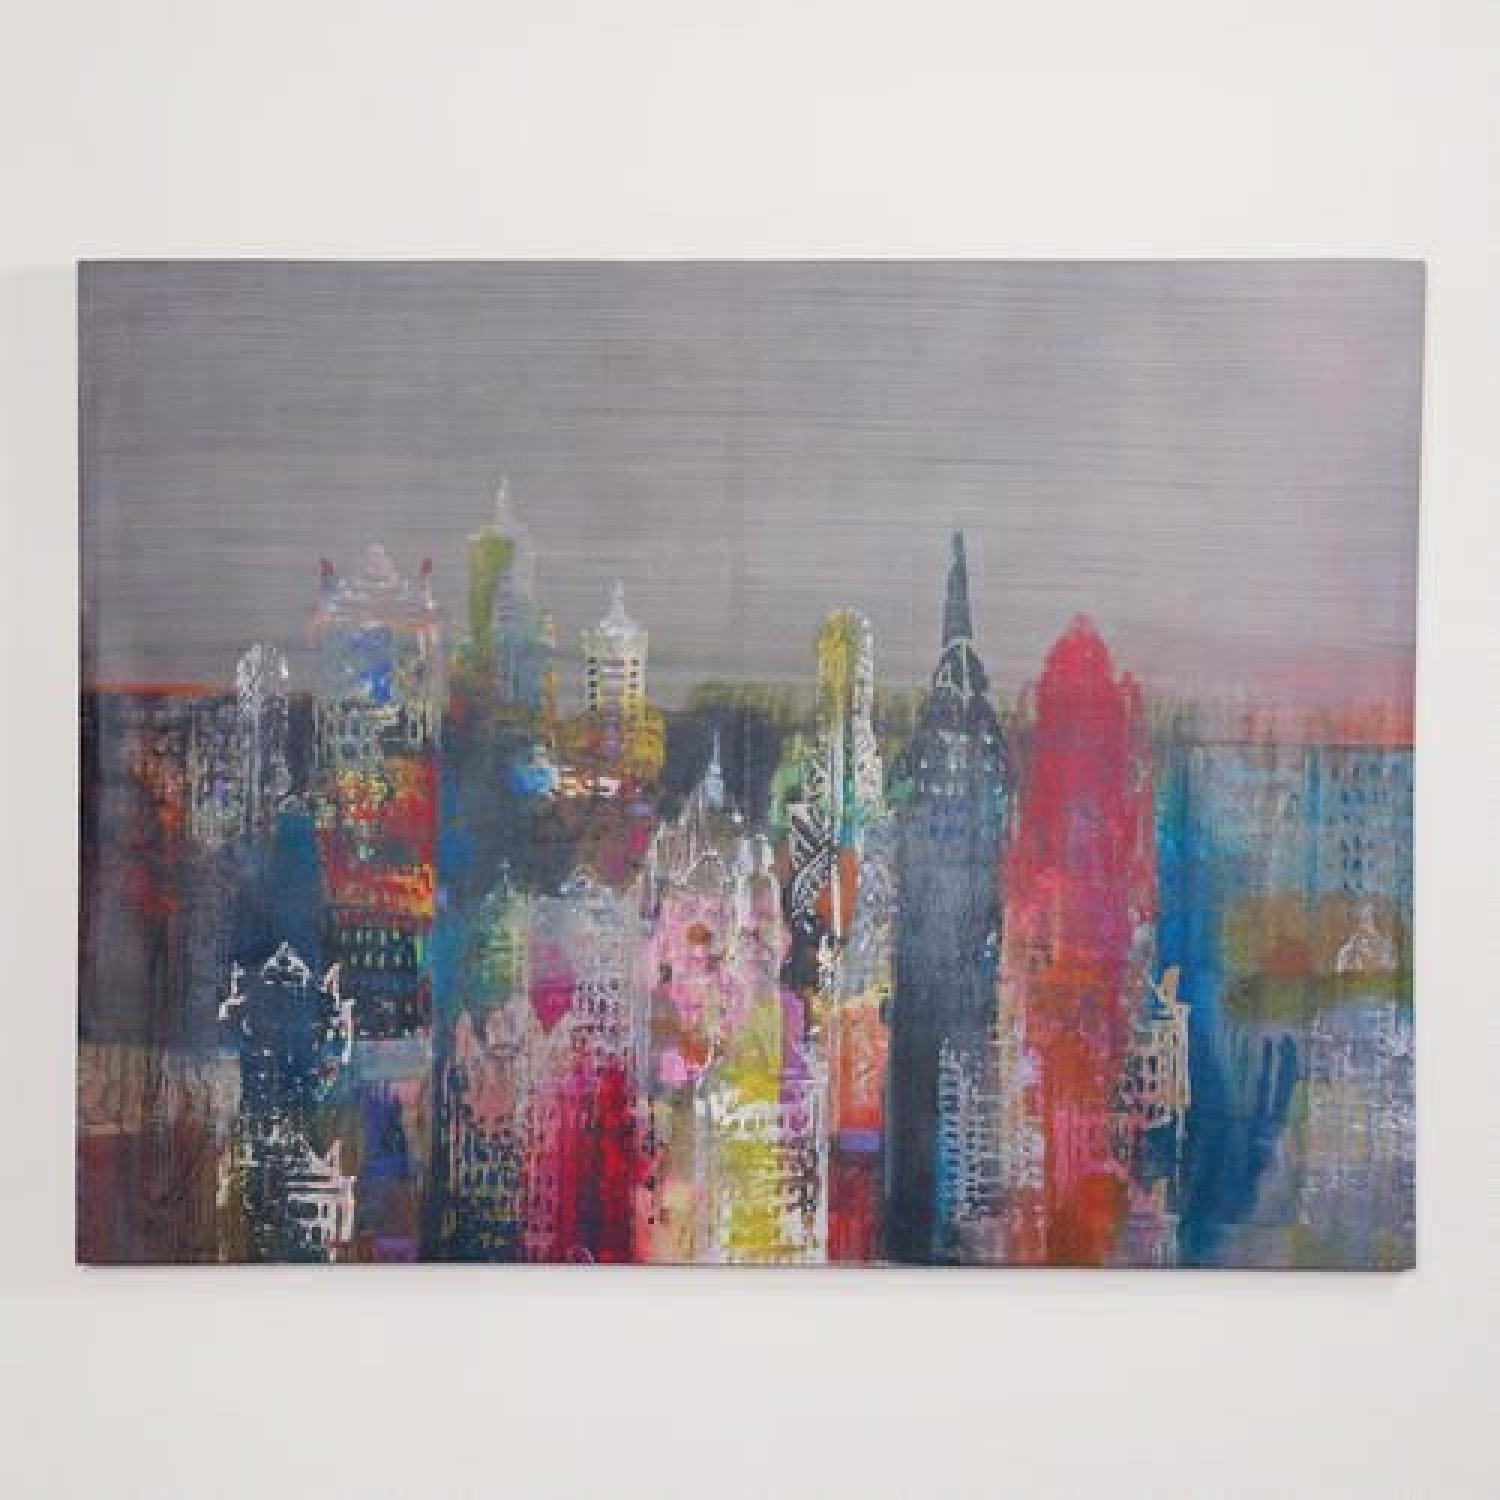 World Market NYC Skyline Canvas - image-1